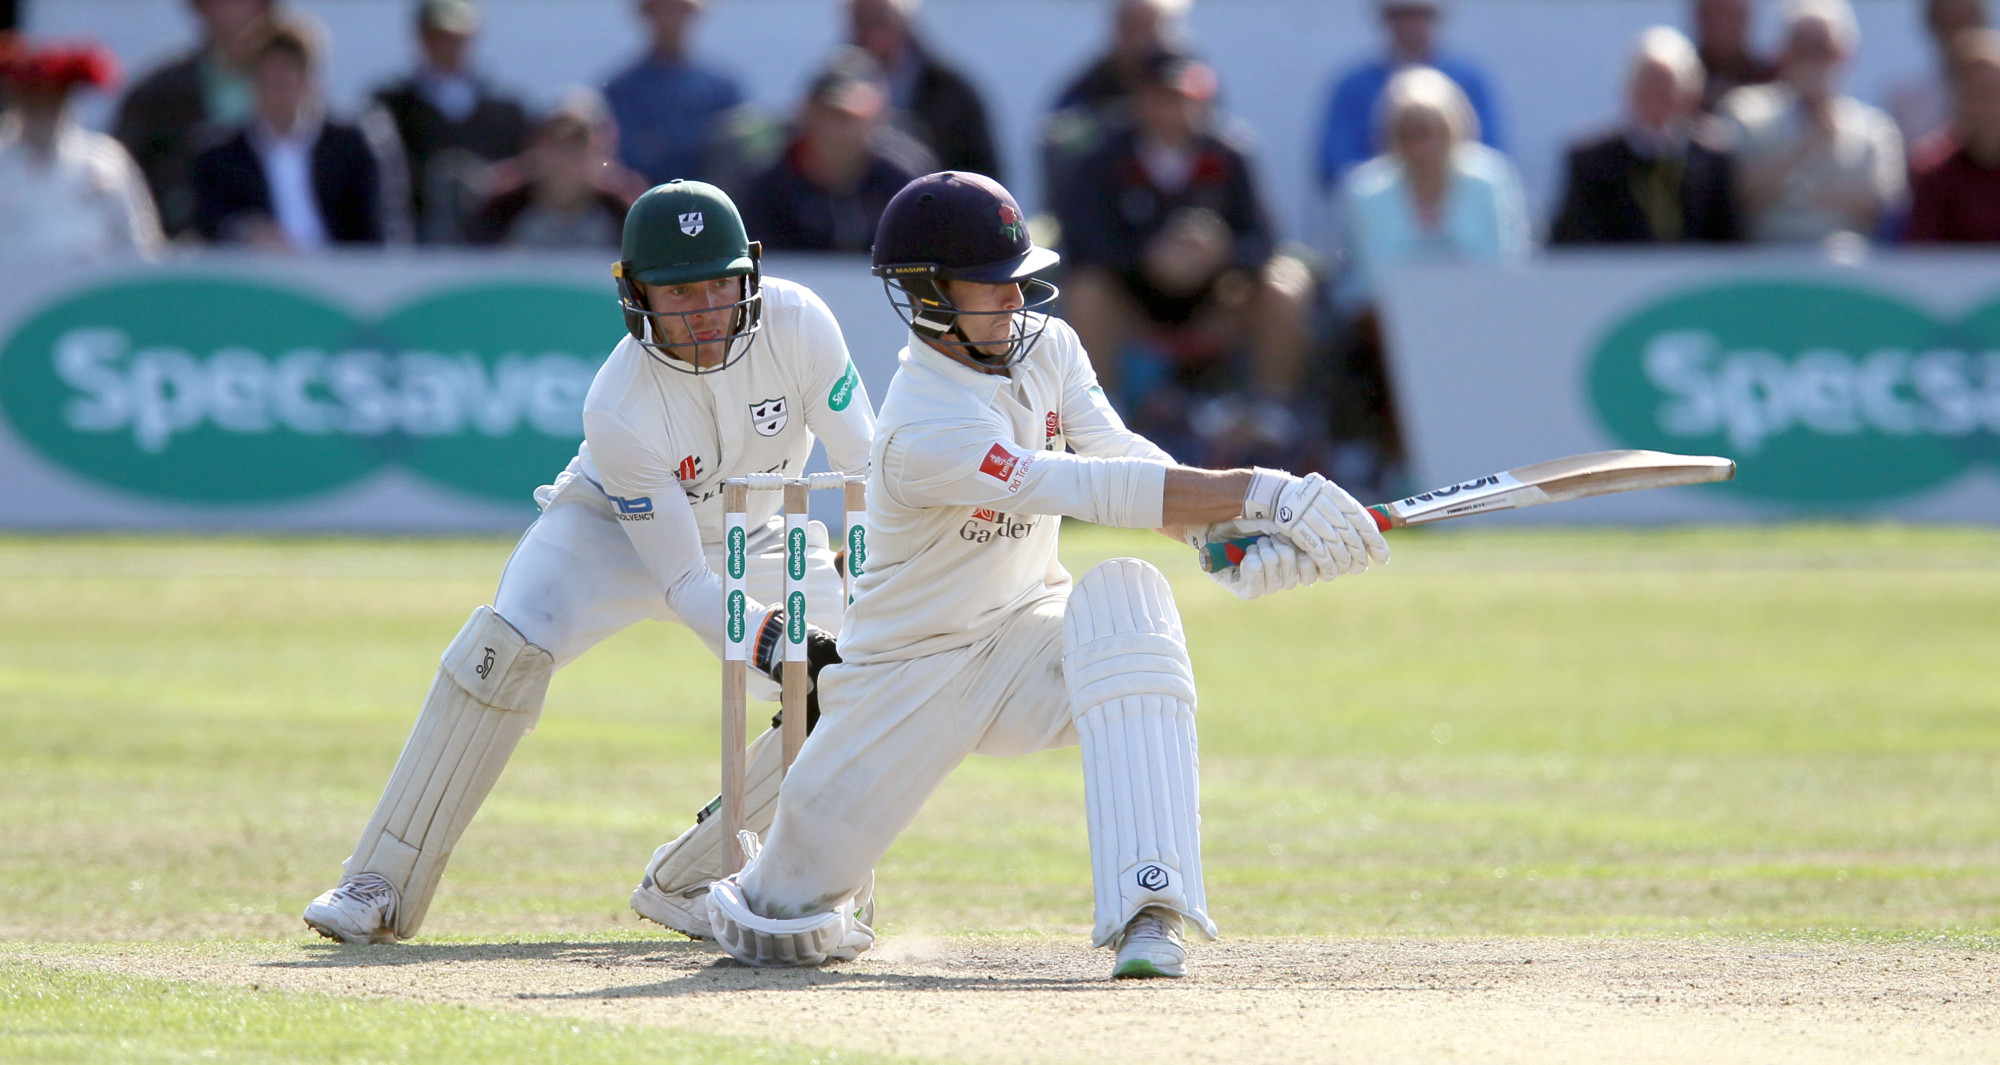 Cricket fan Jeff is stumped by 'ludicrous' decision to play county game in Cumbria